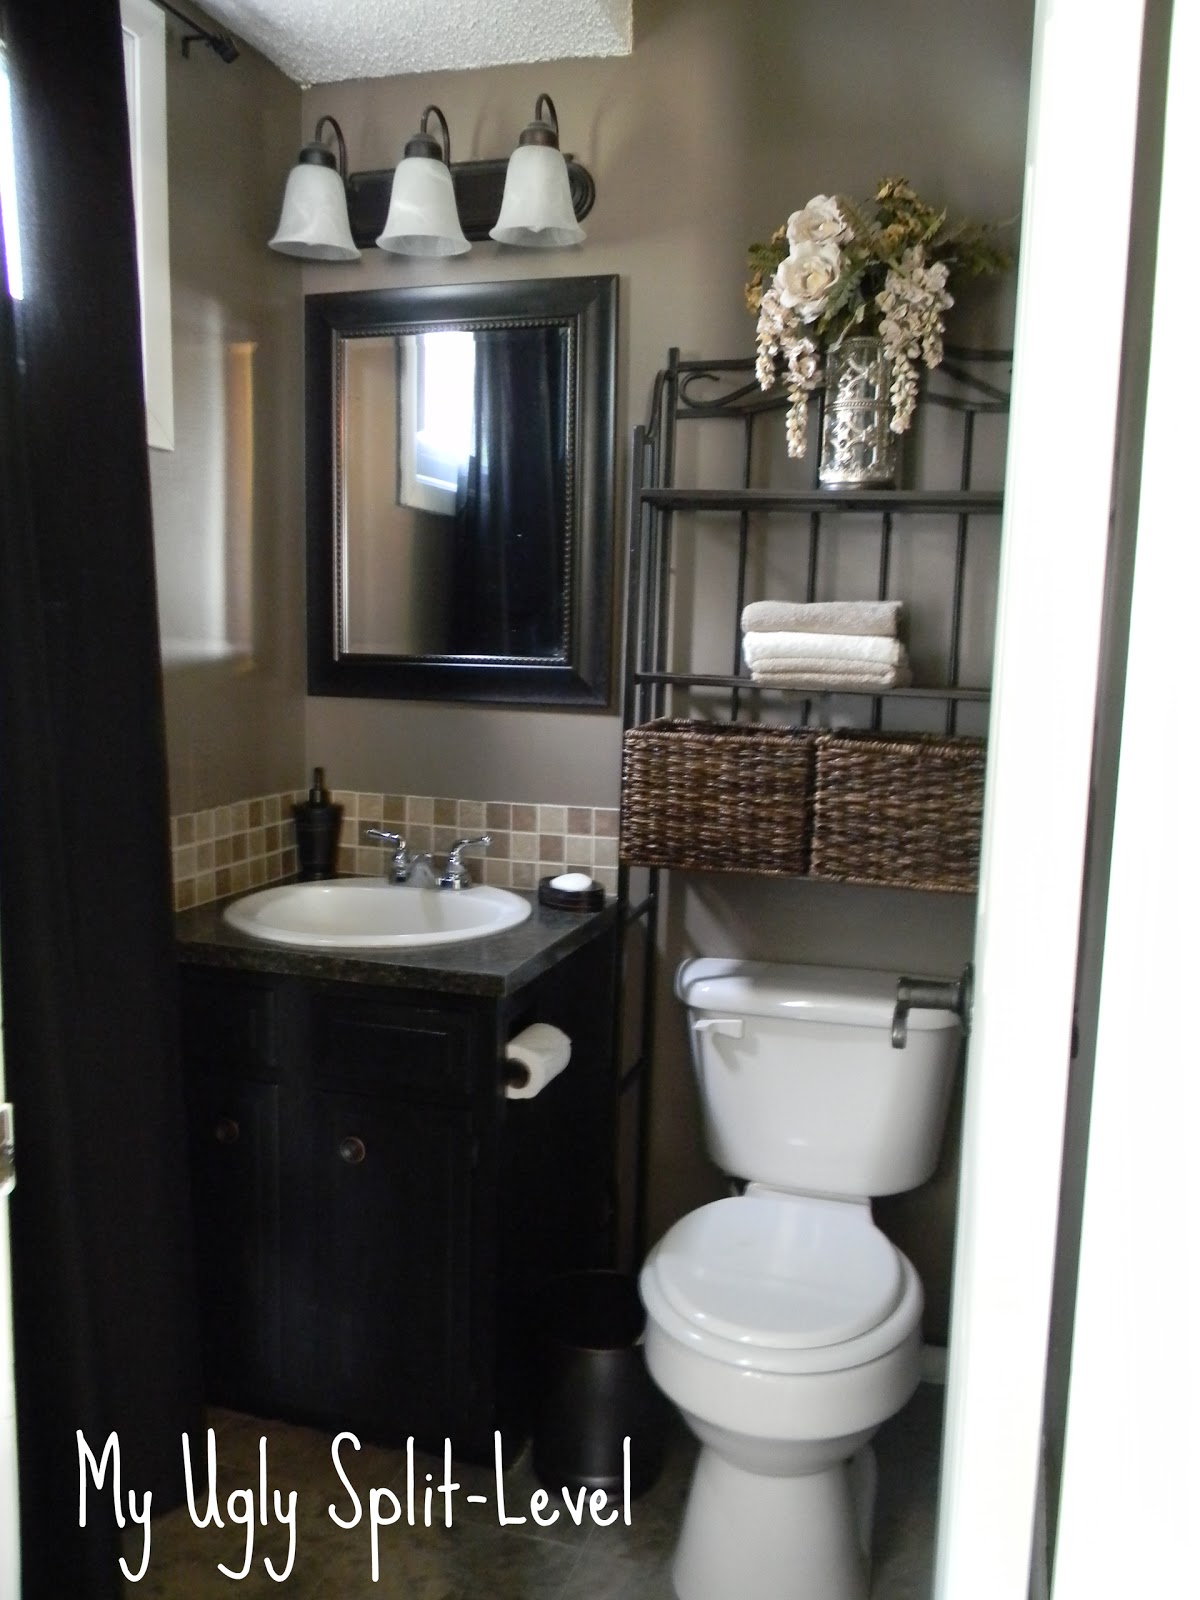 My ugly split level the back bathroom for Bathroom decorating ideas images